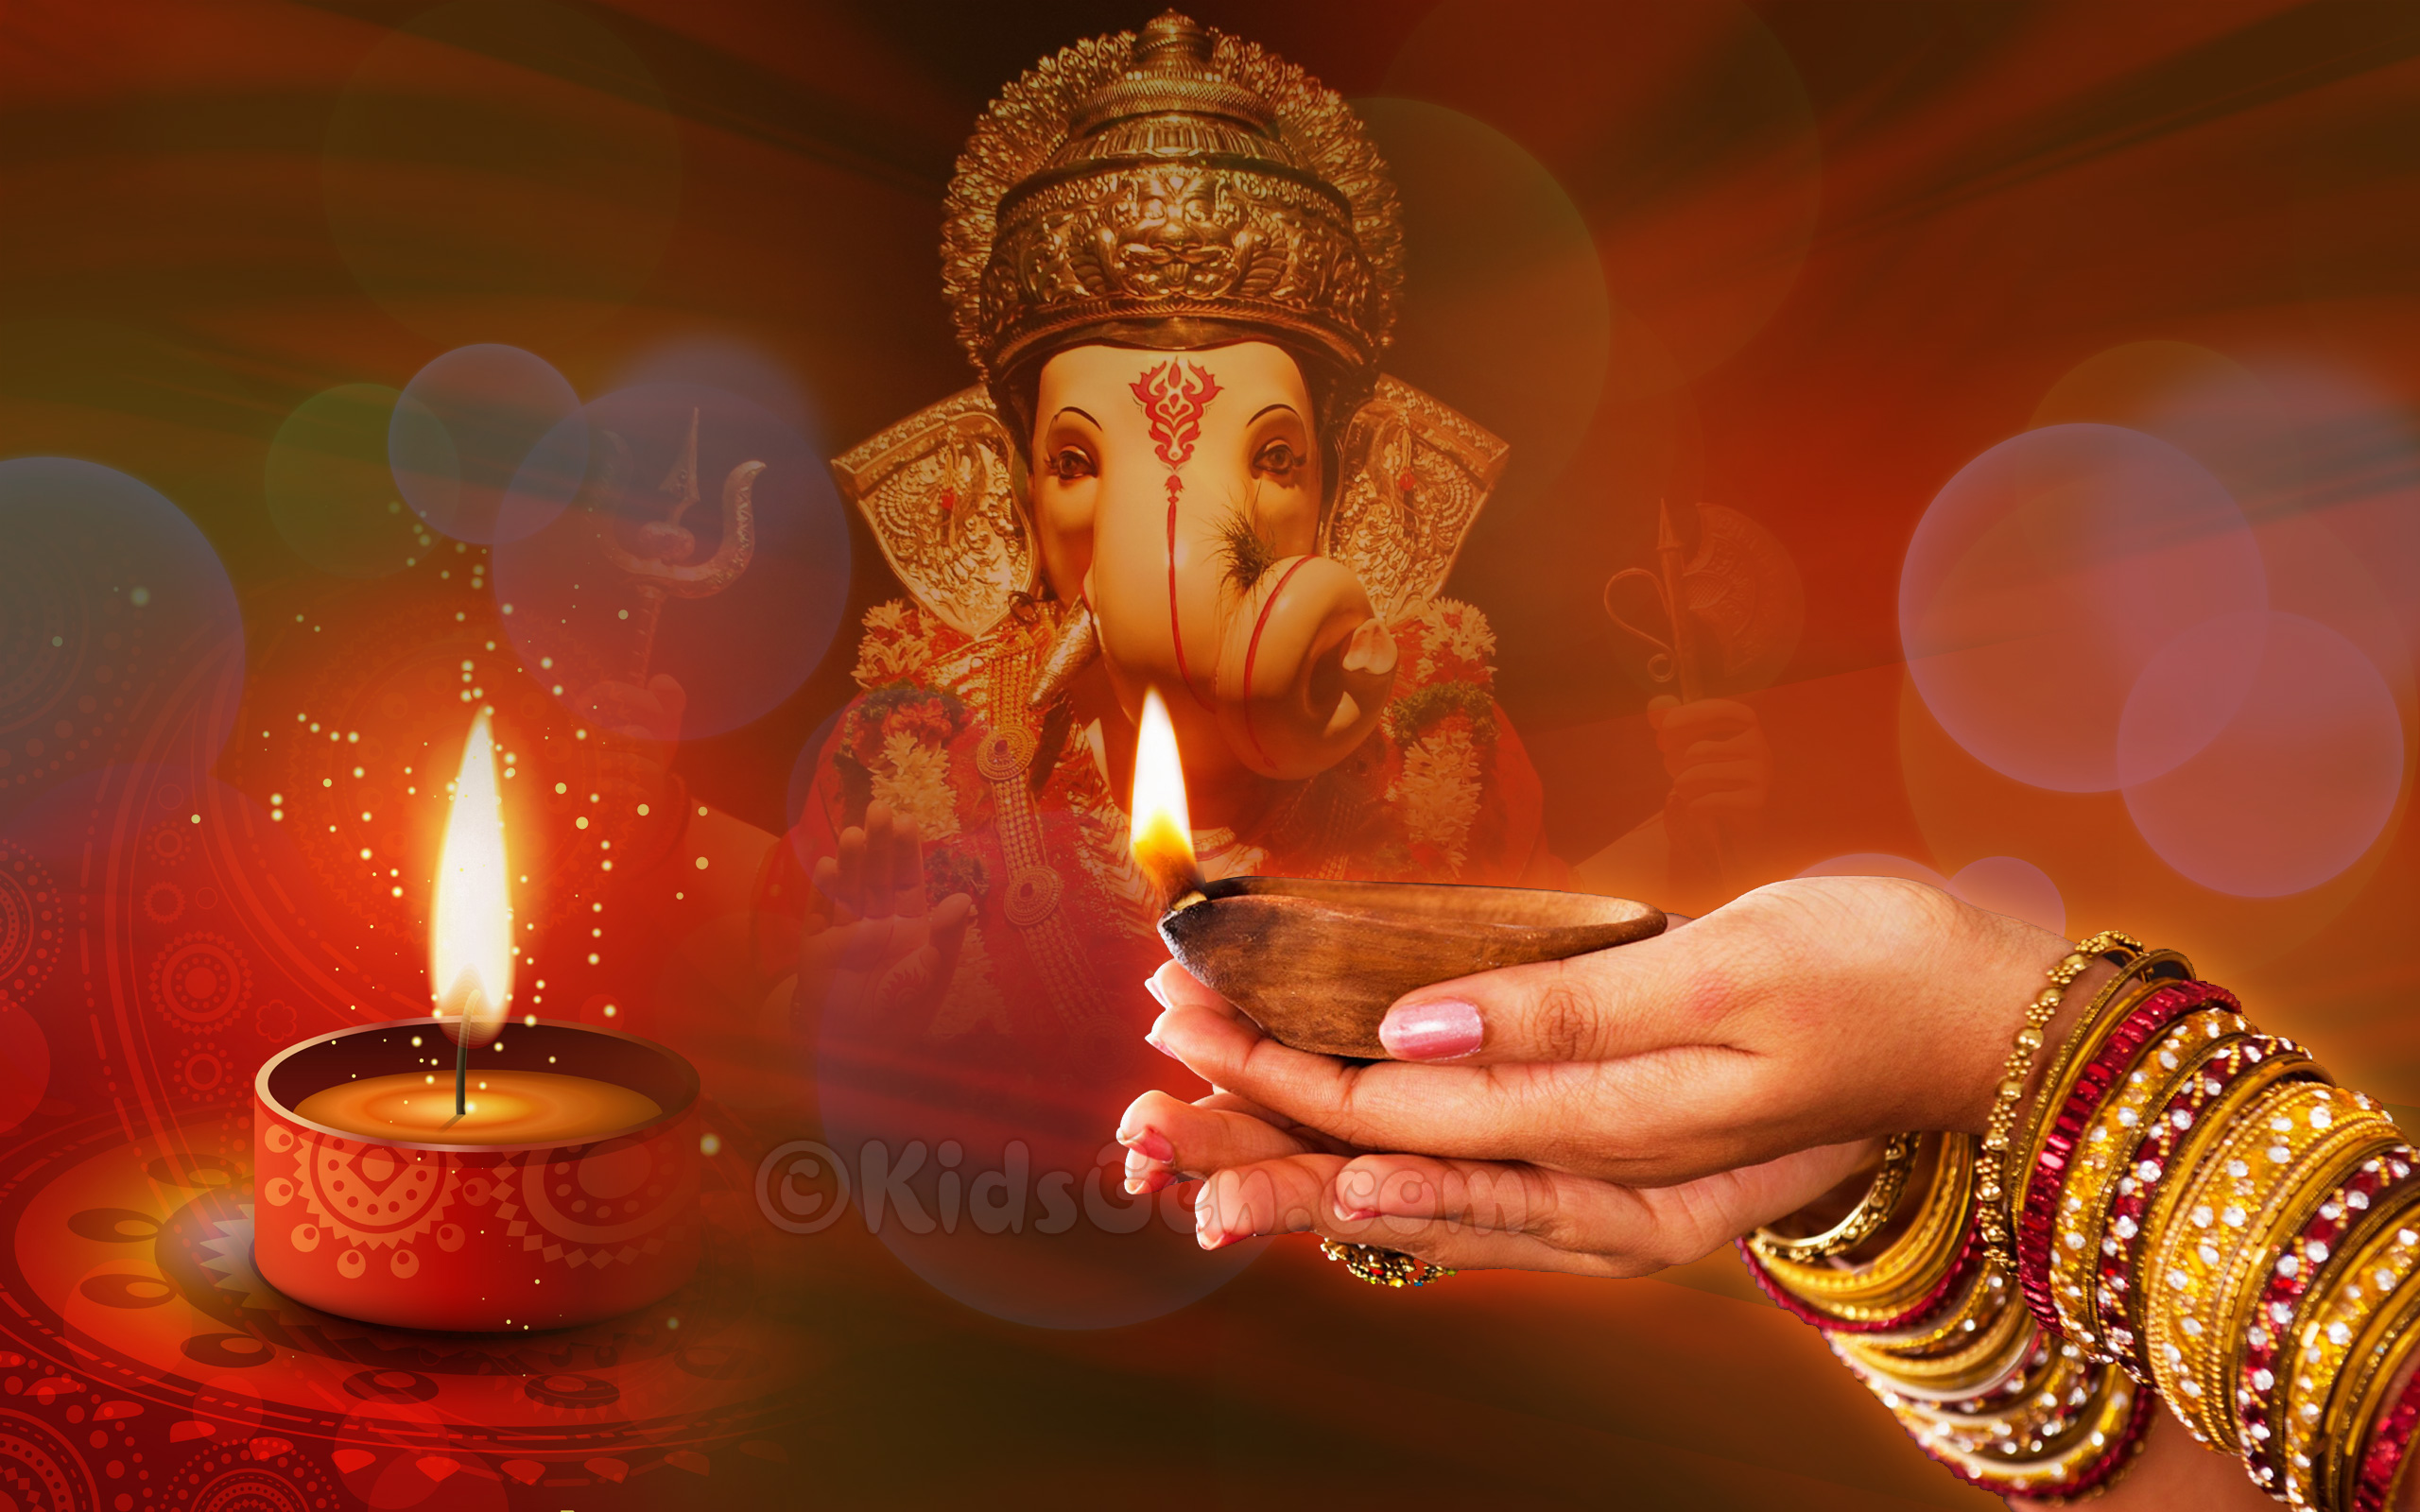 Lord Ganesha 3d Wallpapers Free Download Hd Diwali Wallpapers And Backgrounds